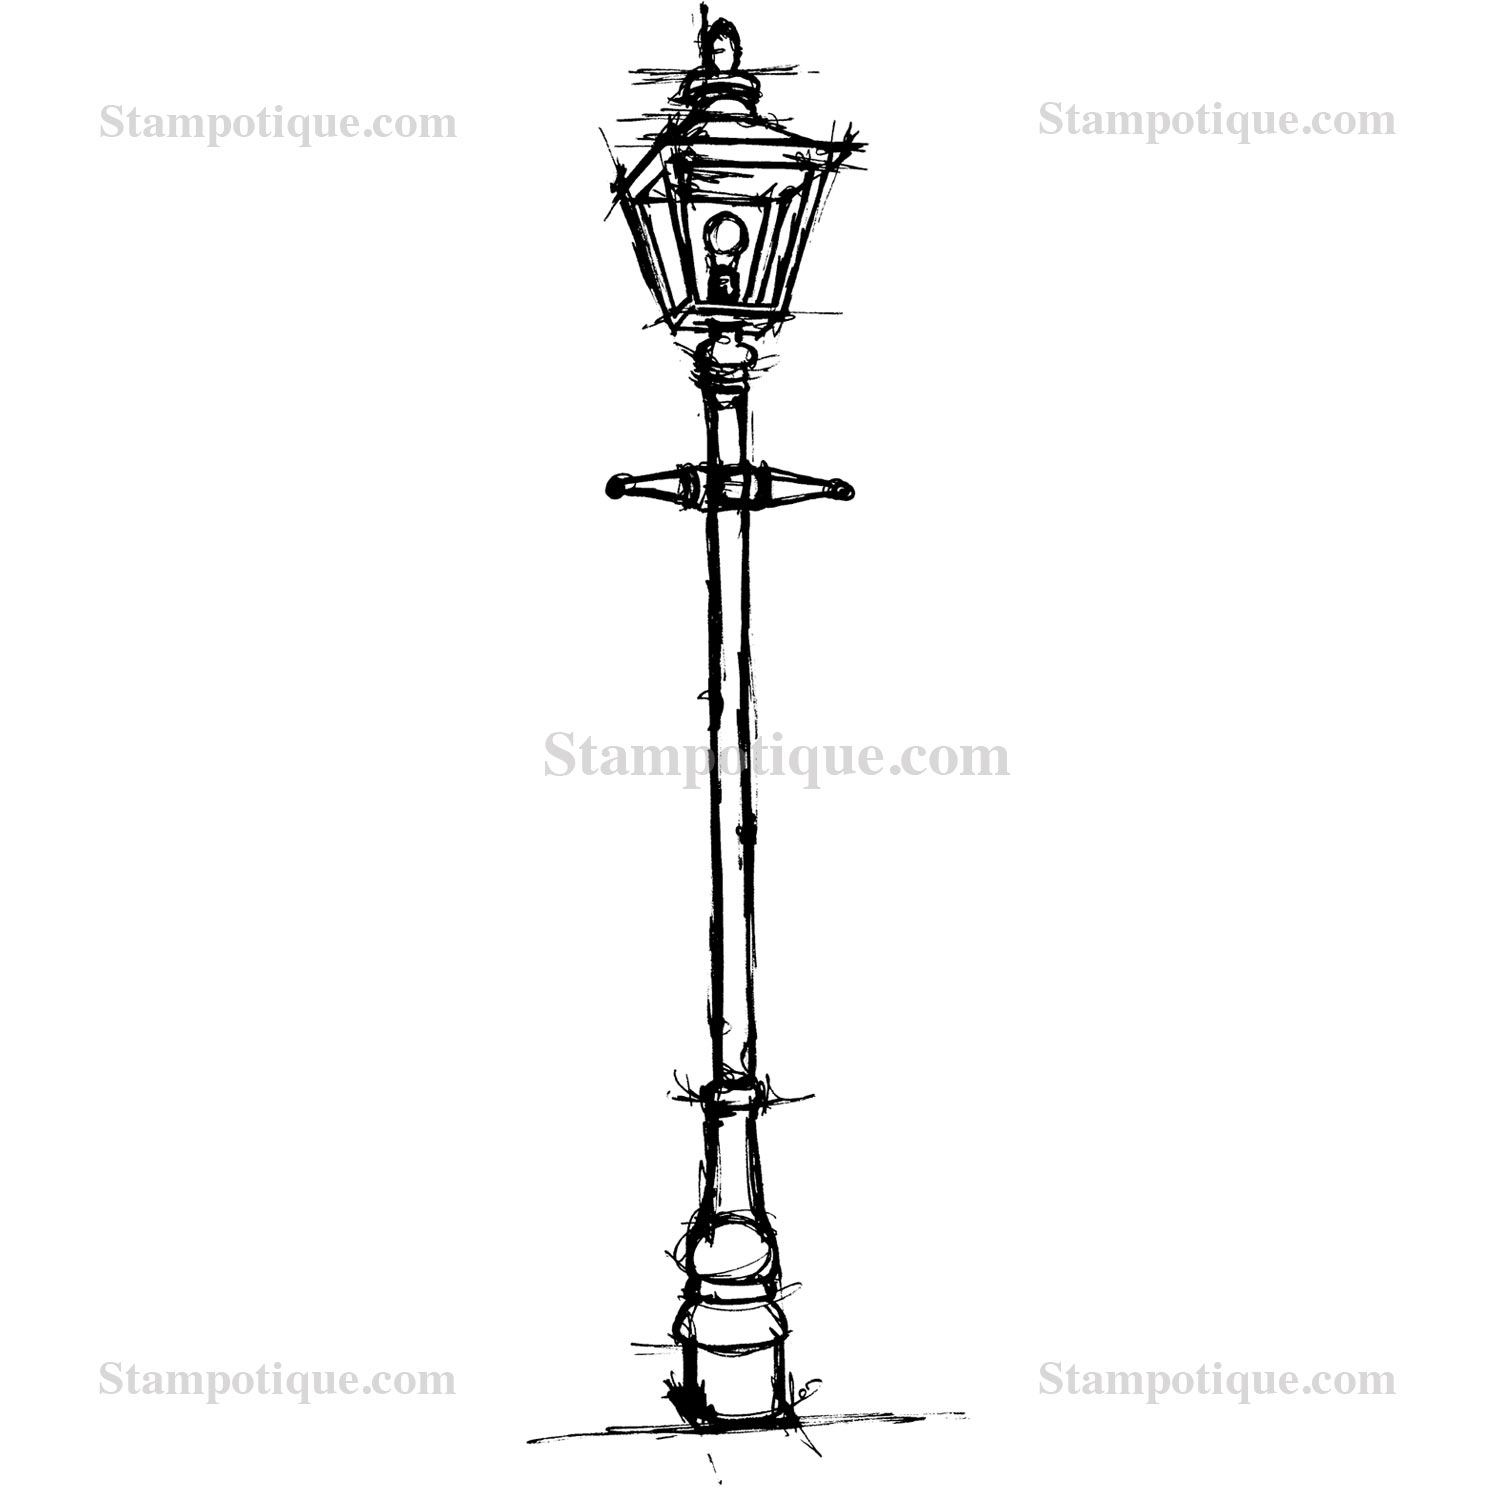 lamppost Gallery